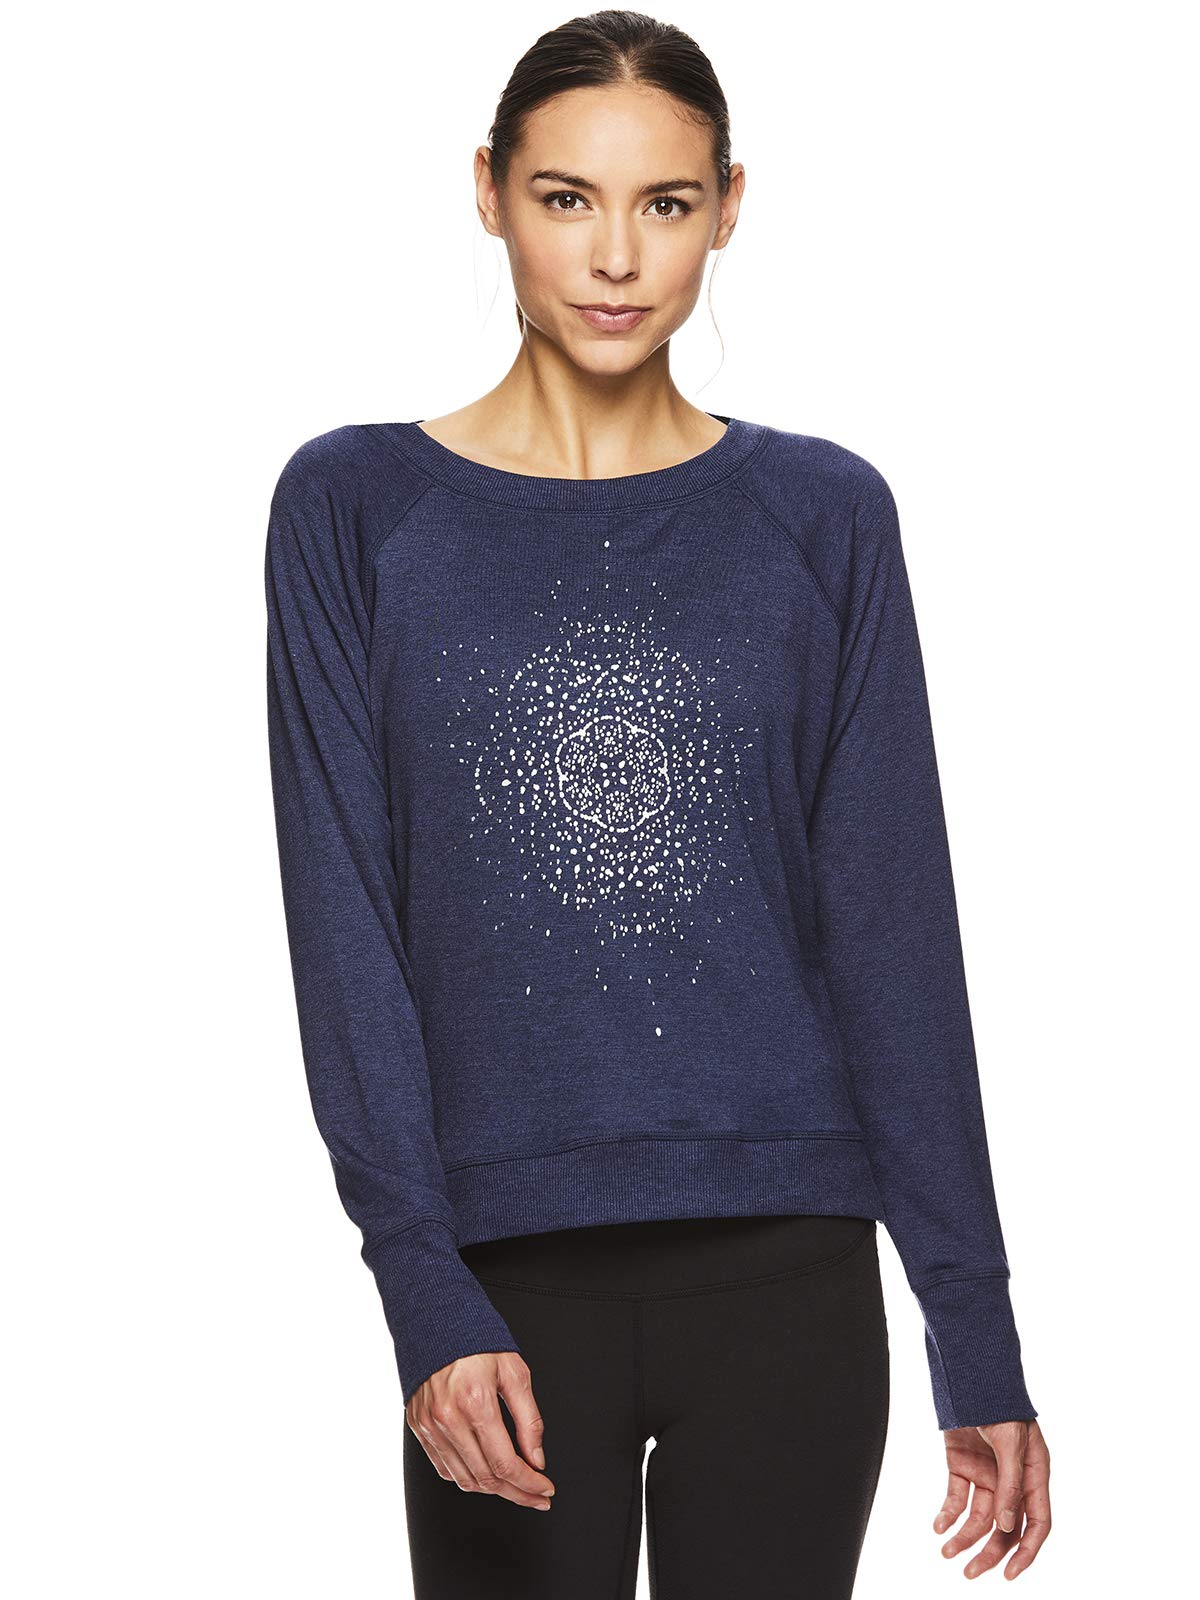 Gaiam Women's Pullover Yoga Sweater - Long Sleeve Graphic Activewear Shirt - Calla Medieval Blue Heather, Medium by Gaiam